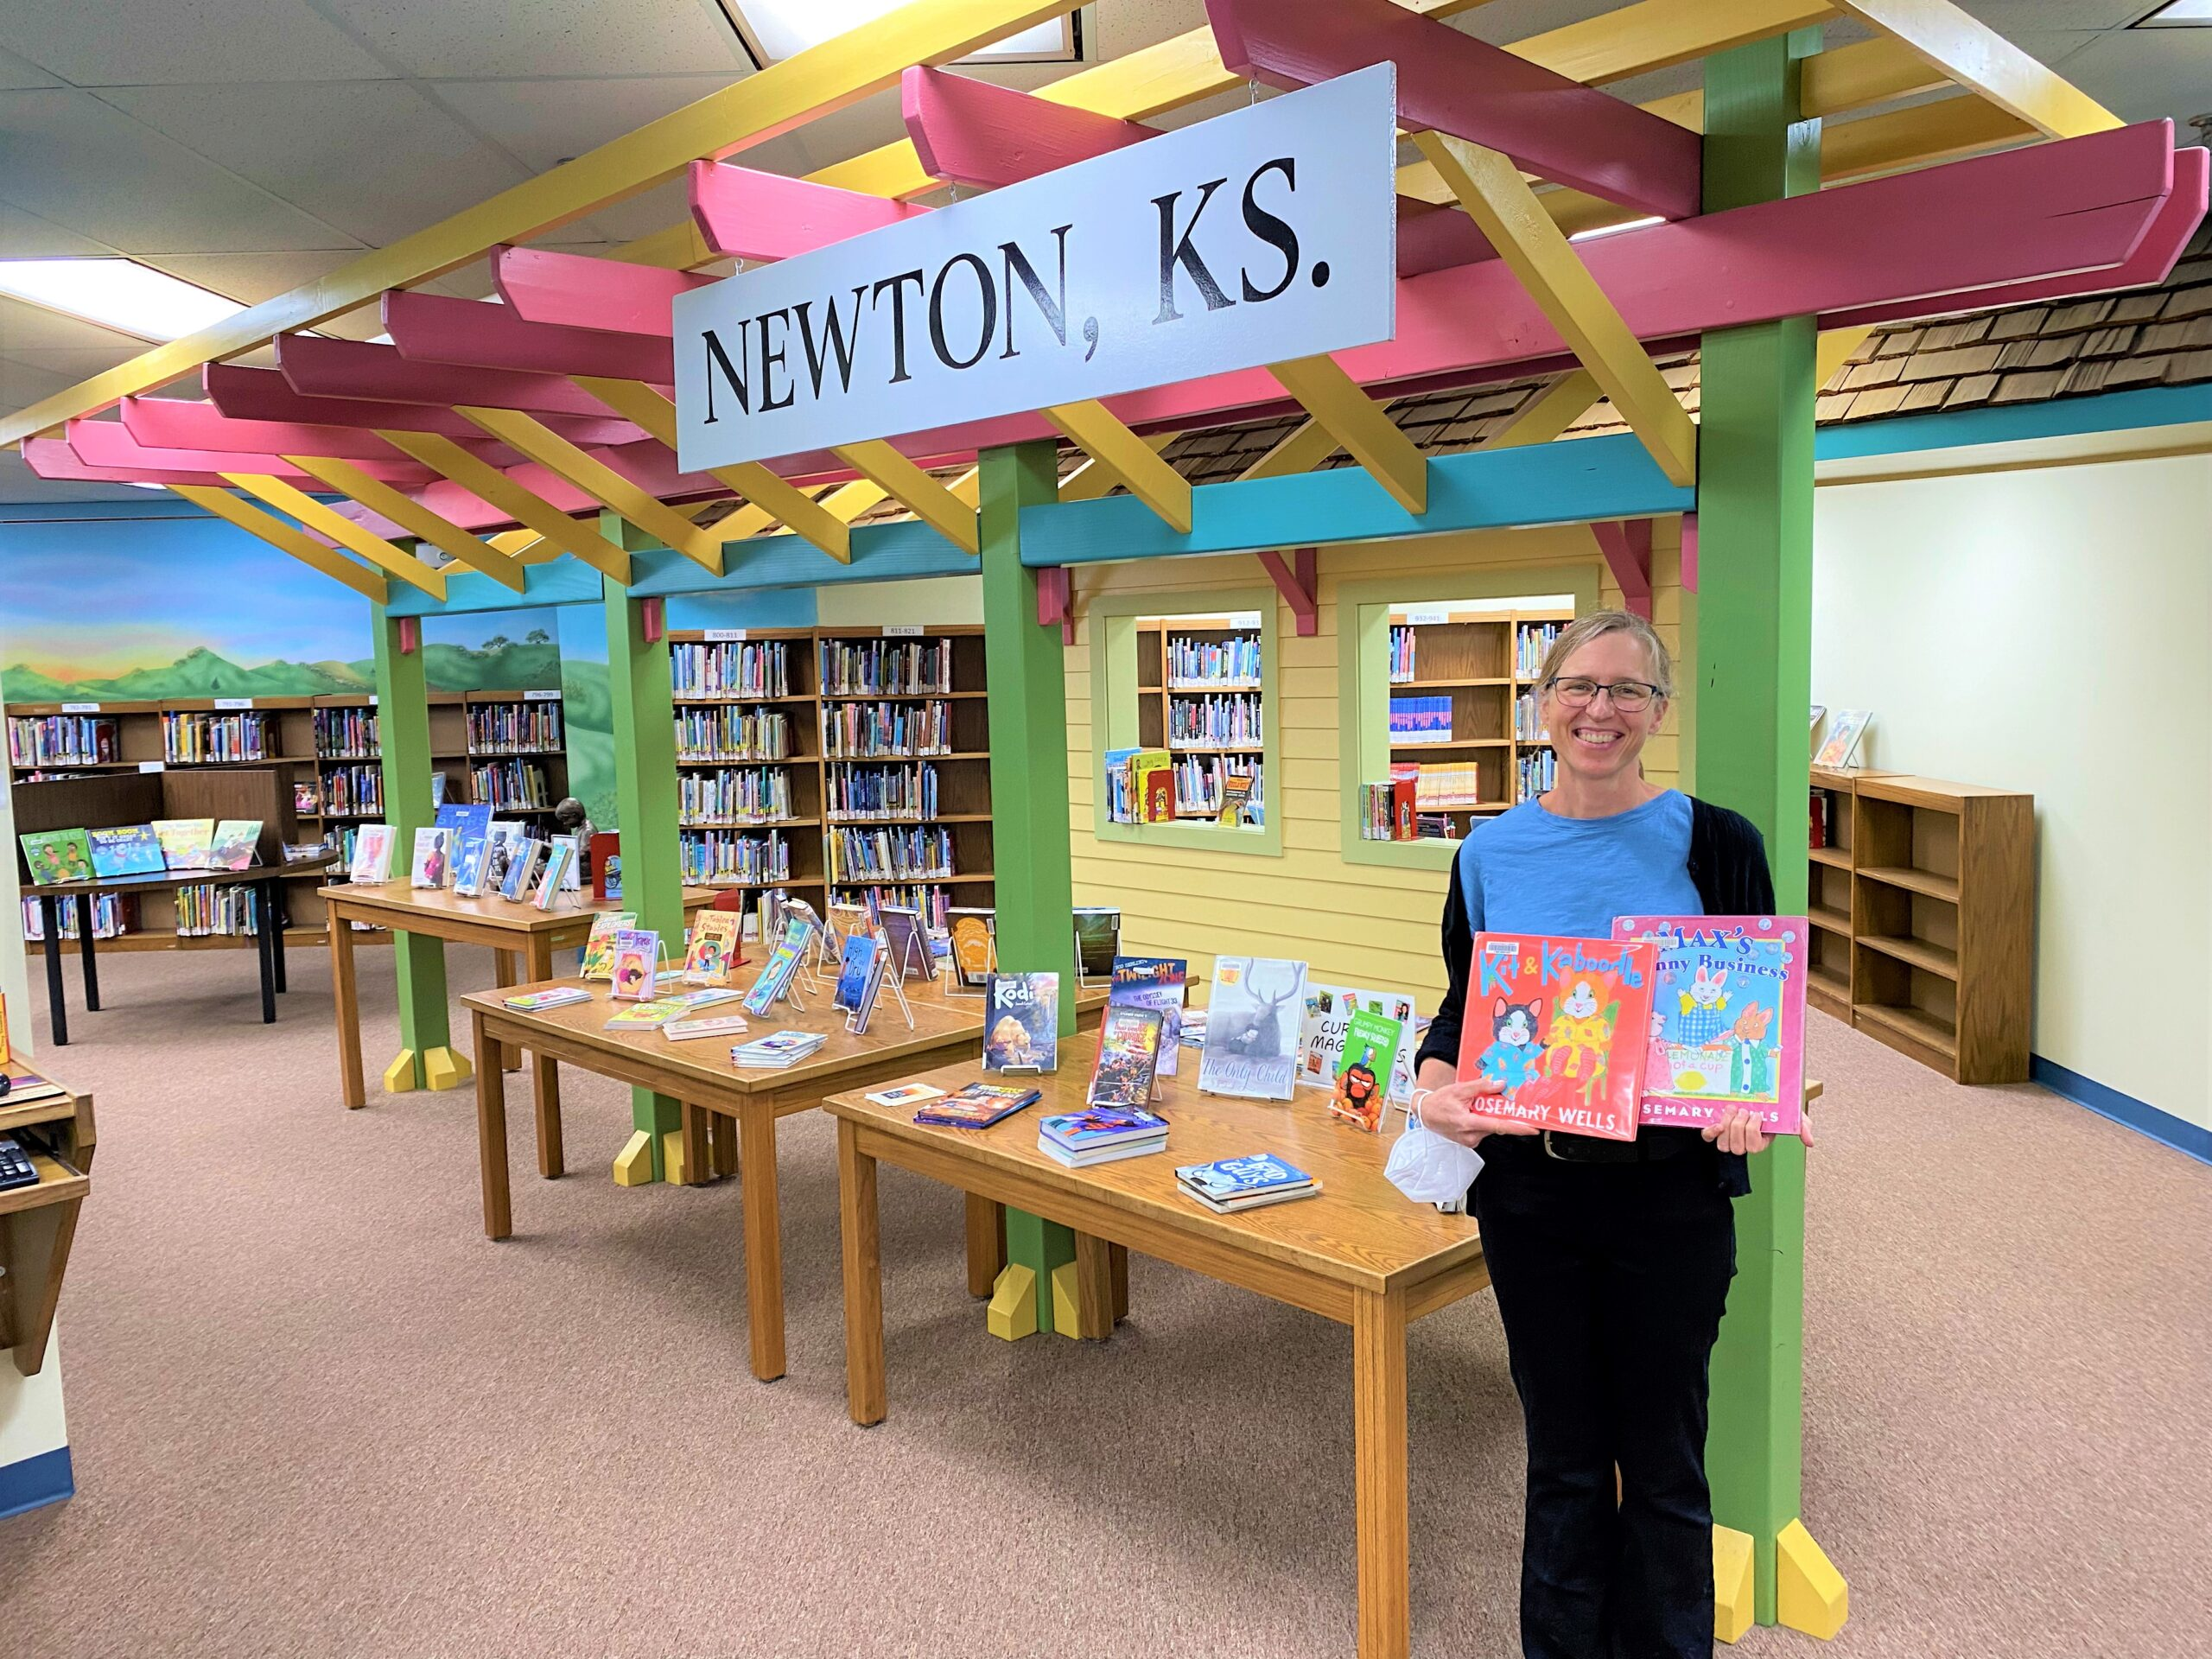 Sara Rickard poses for a photo in the children's department at Newton Public Library. She holds two children's books and stands in front of a background of bookshelves and displays.